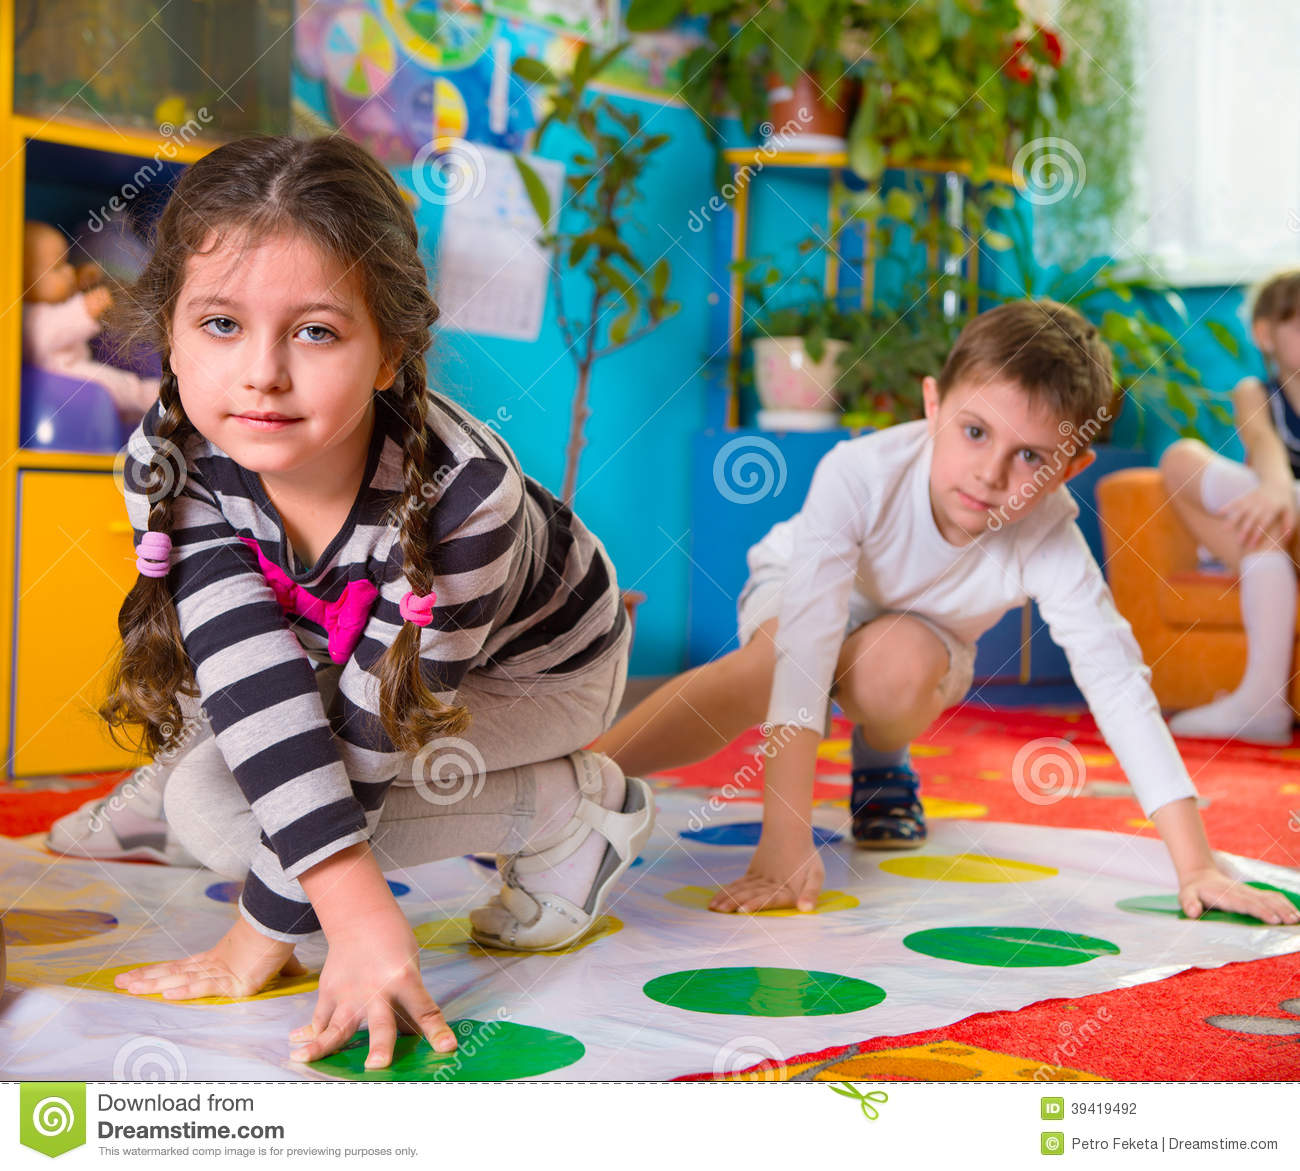 Kinder Garden: Cute Toddlers Playing In Twister Game Stock Photo